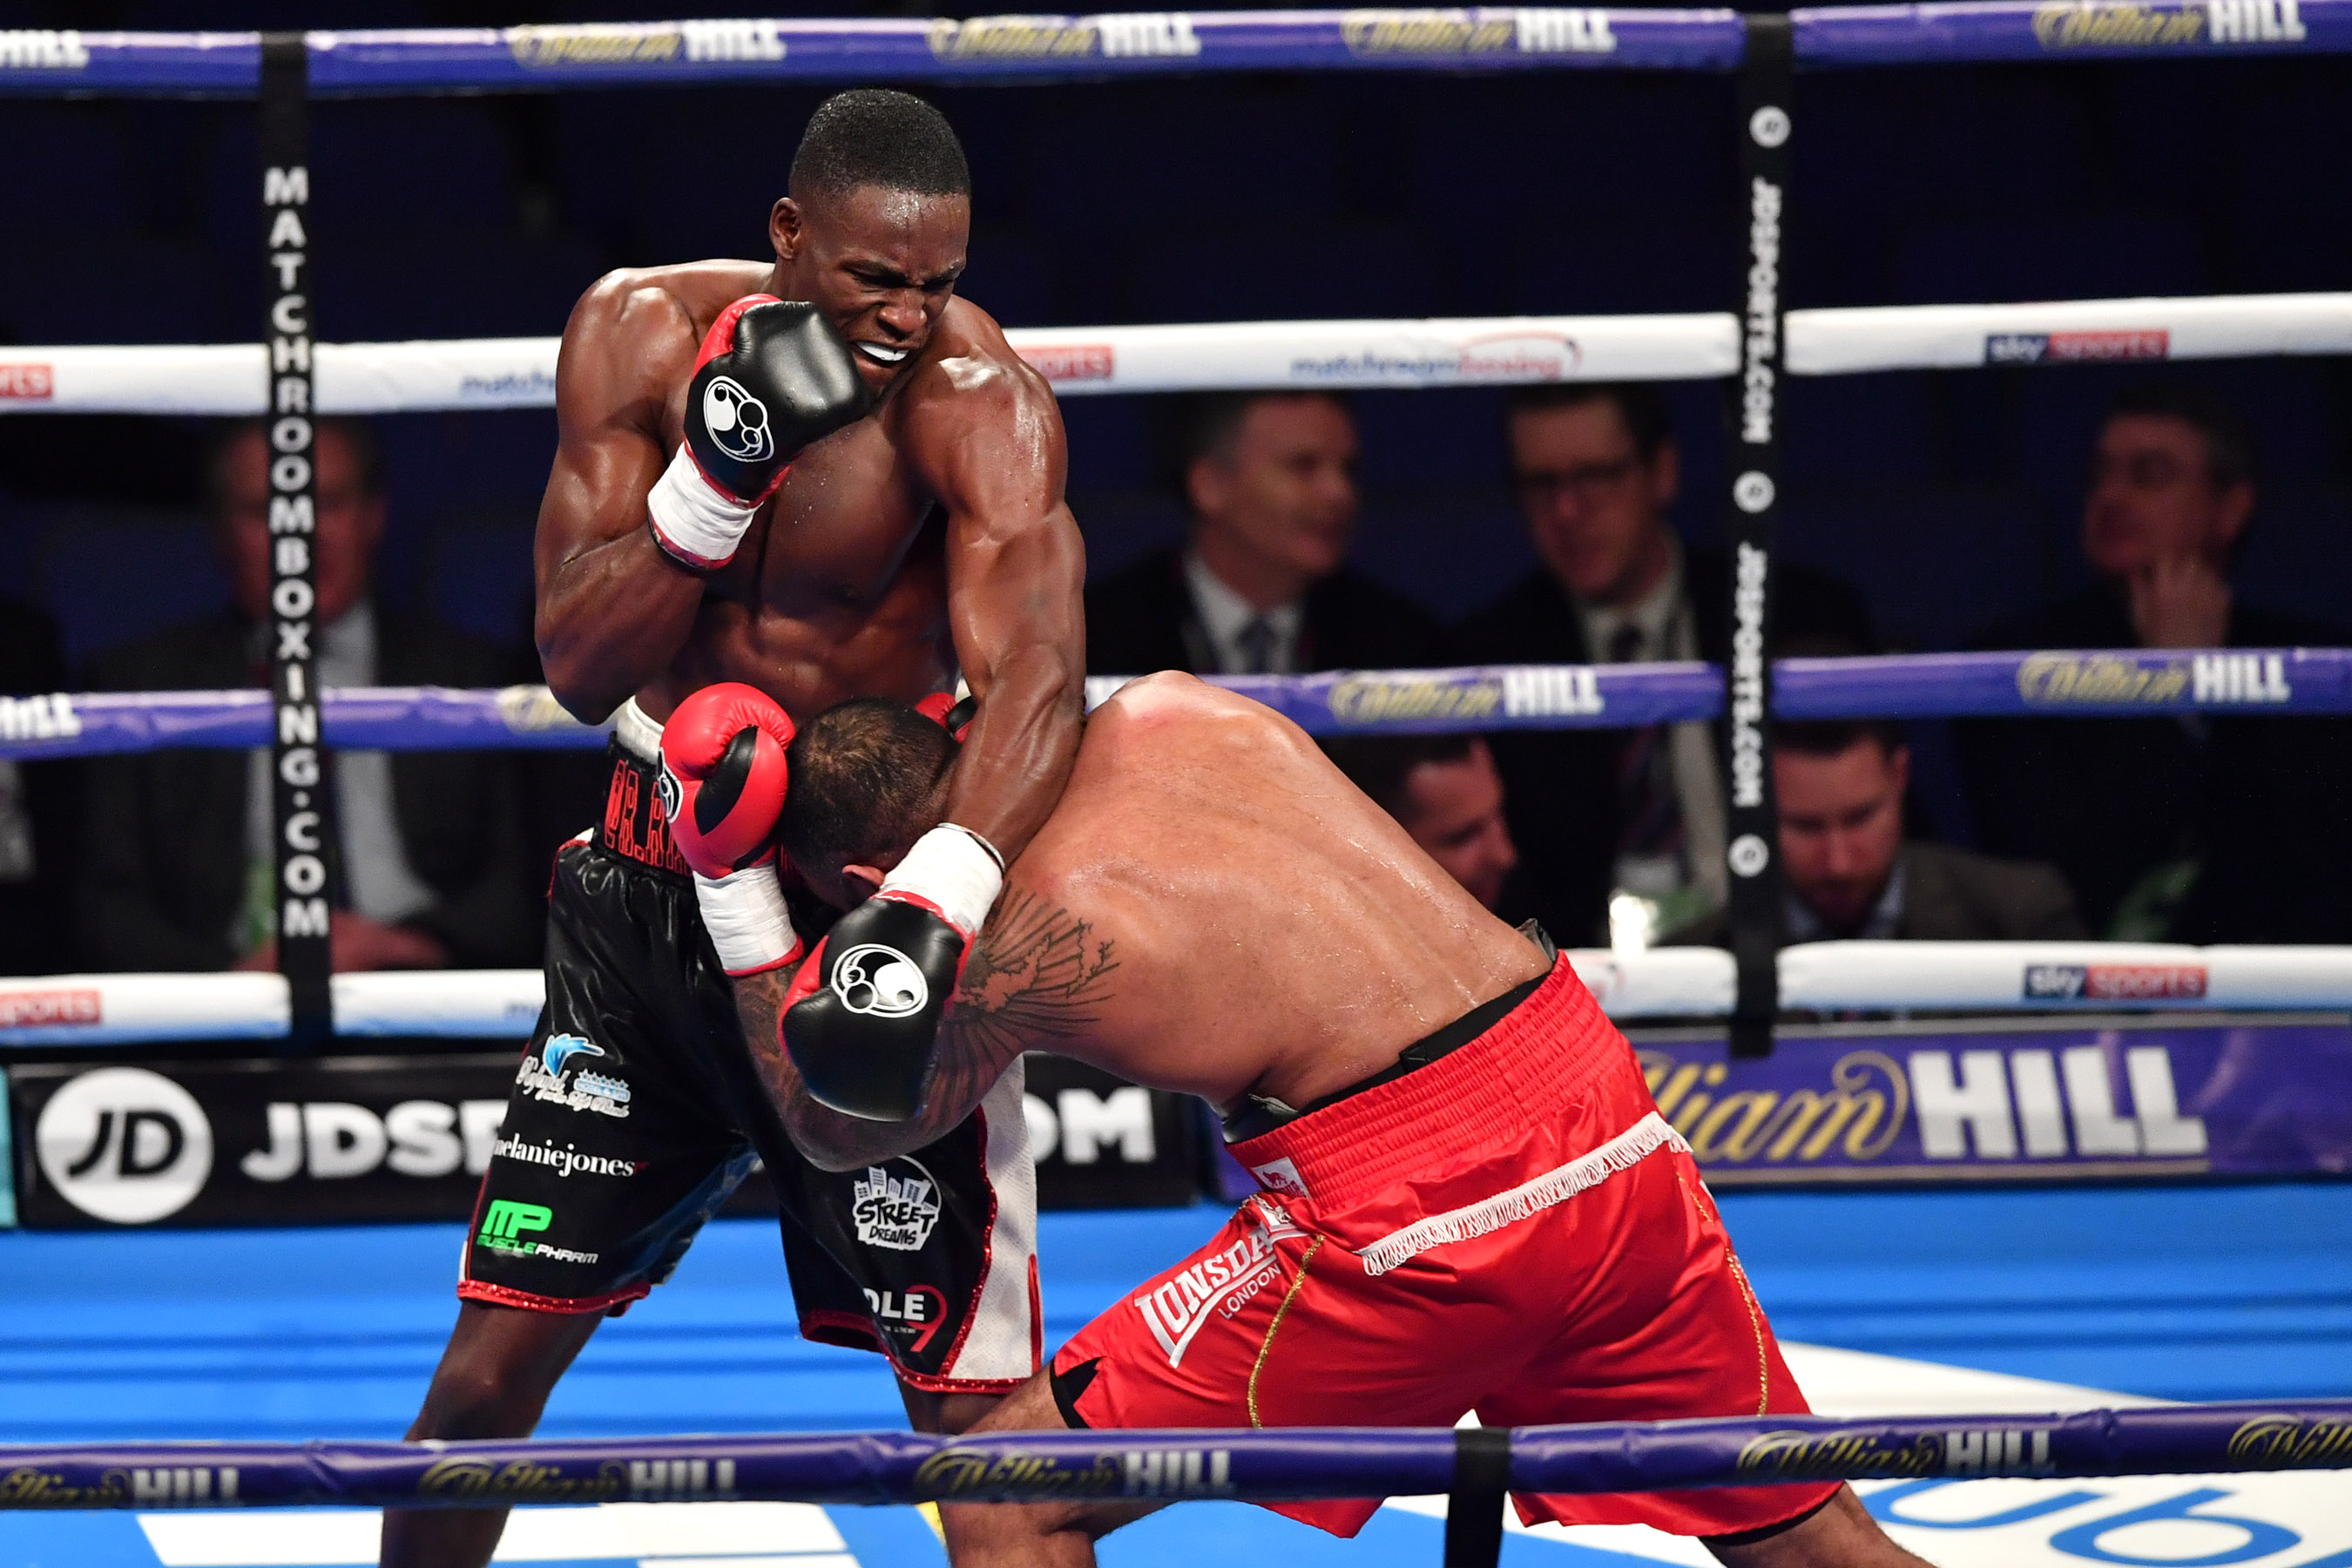 Richard Piakporhe v Adam Williams, Boxing at the O2, O2 Greenwich, 24 March 2018. Image by Keith Gillard